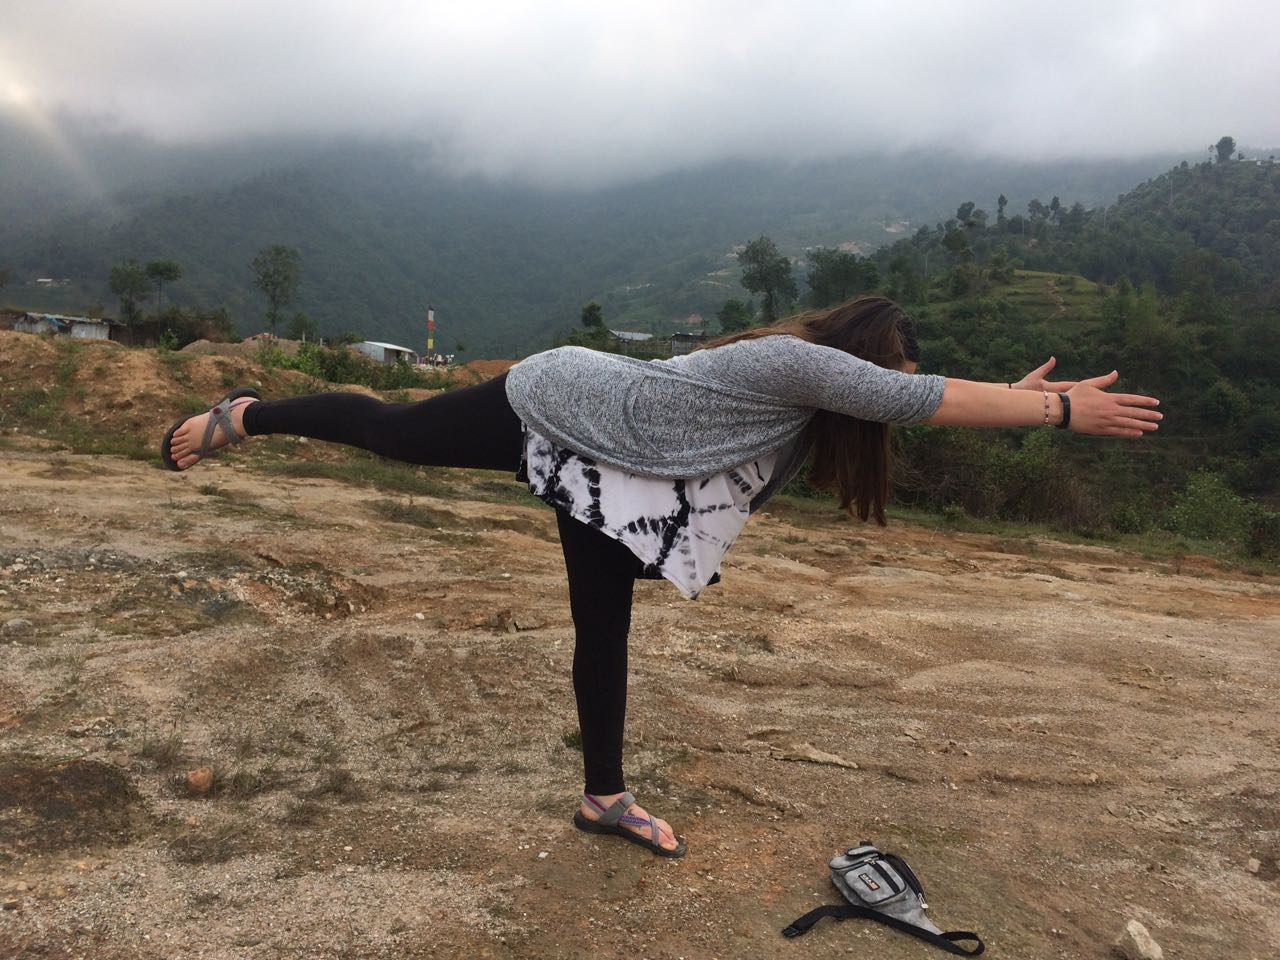 Student performing Peacock Pose on the way while trekking